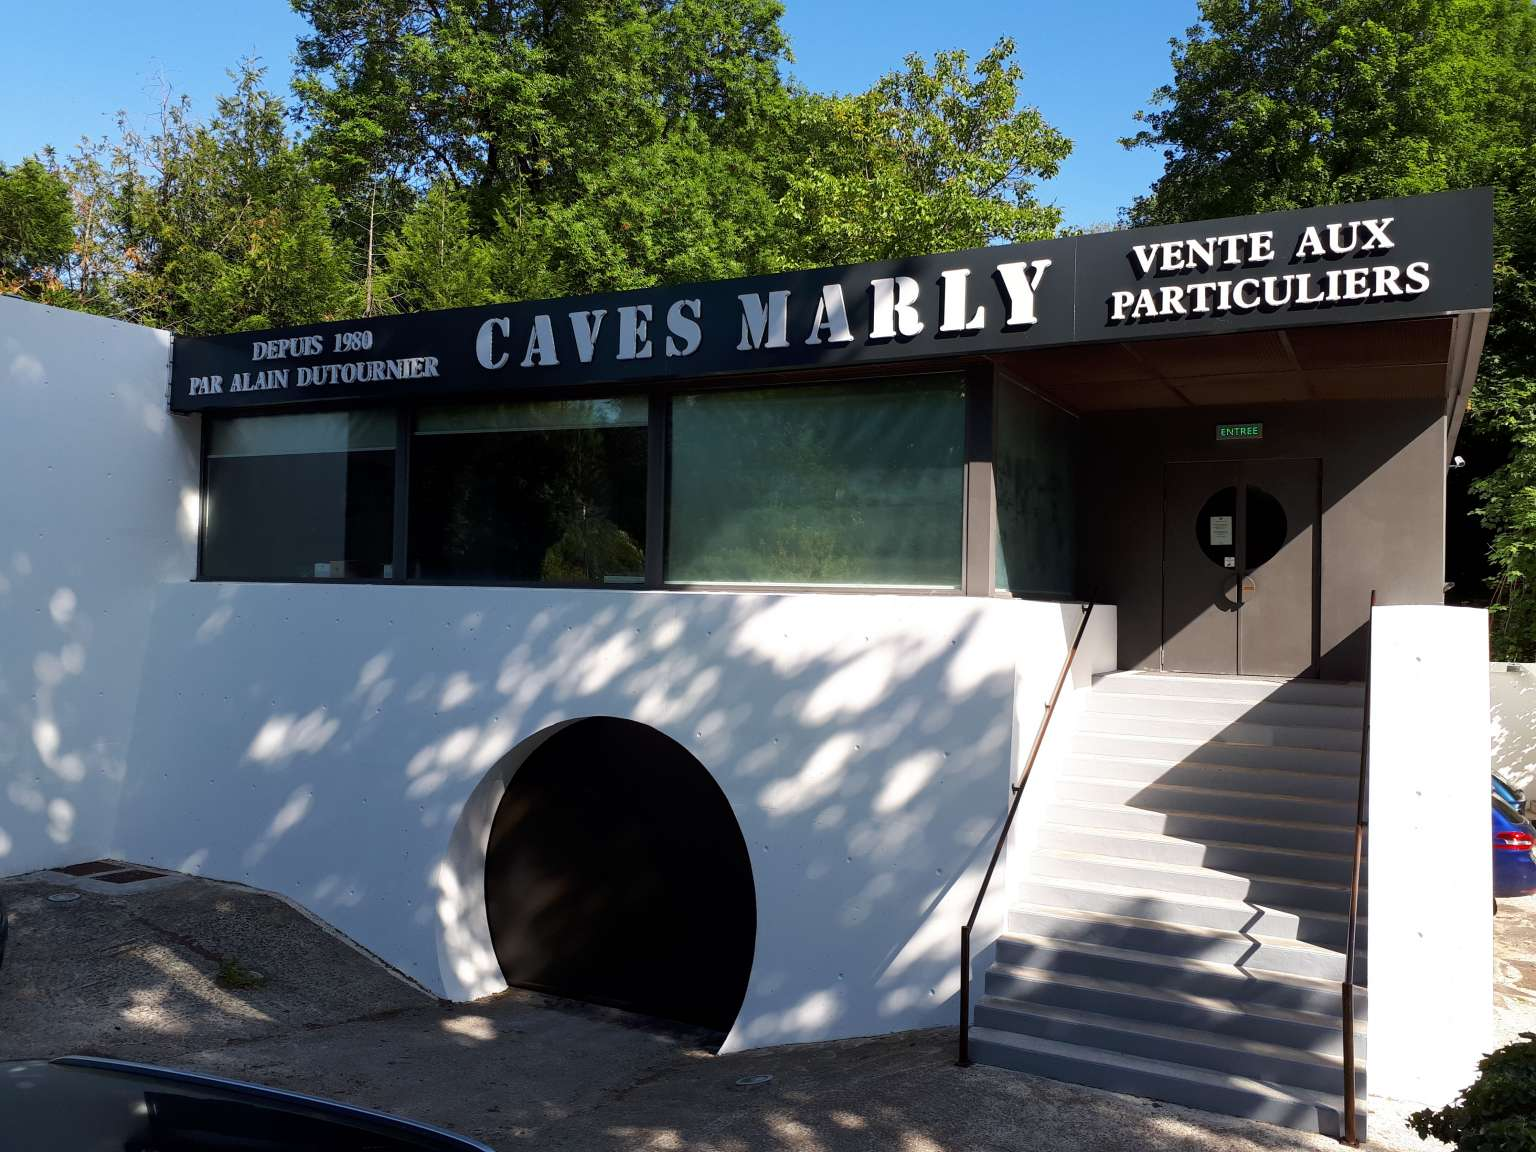 Caves Marly